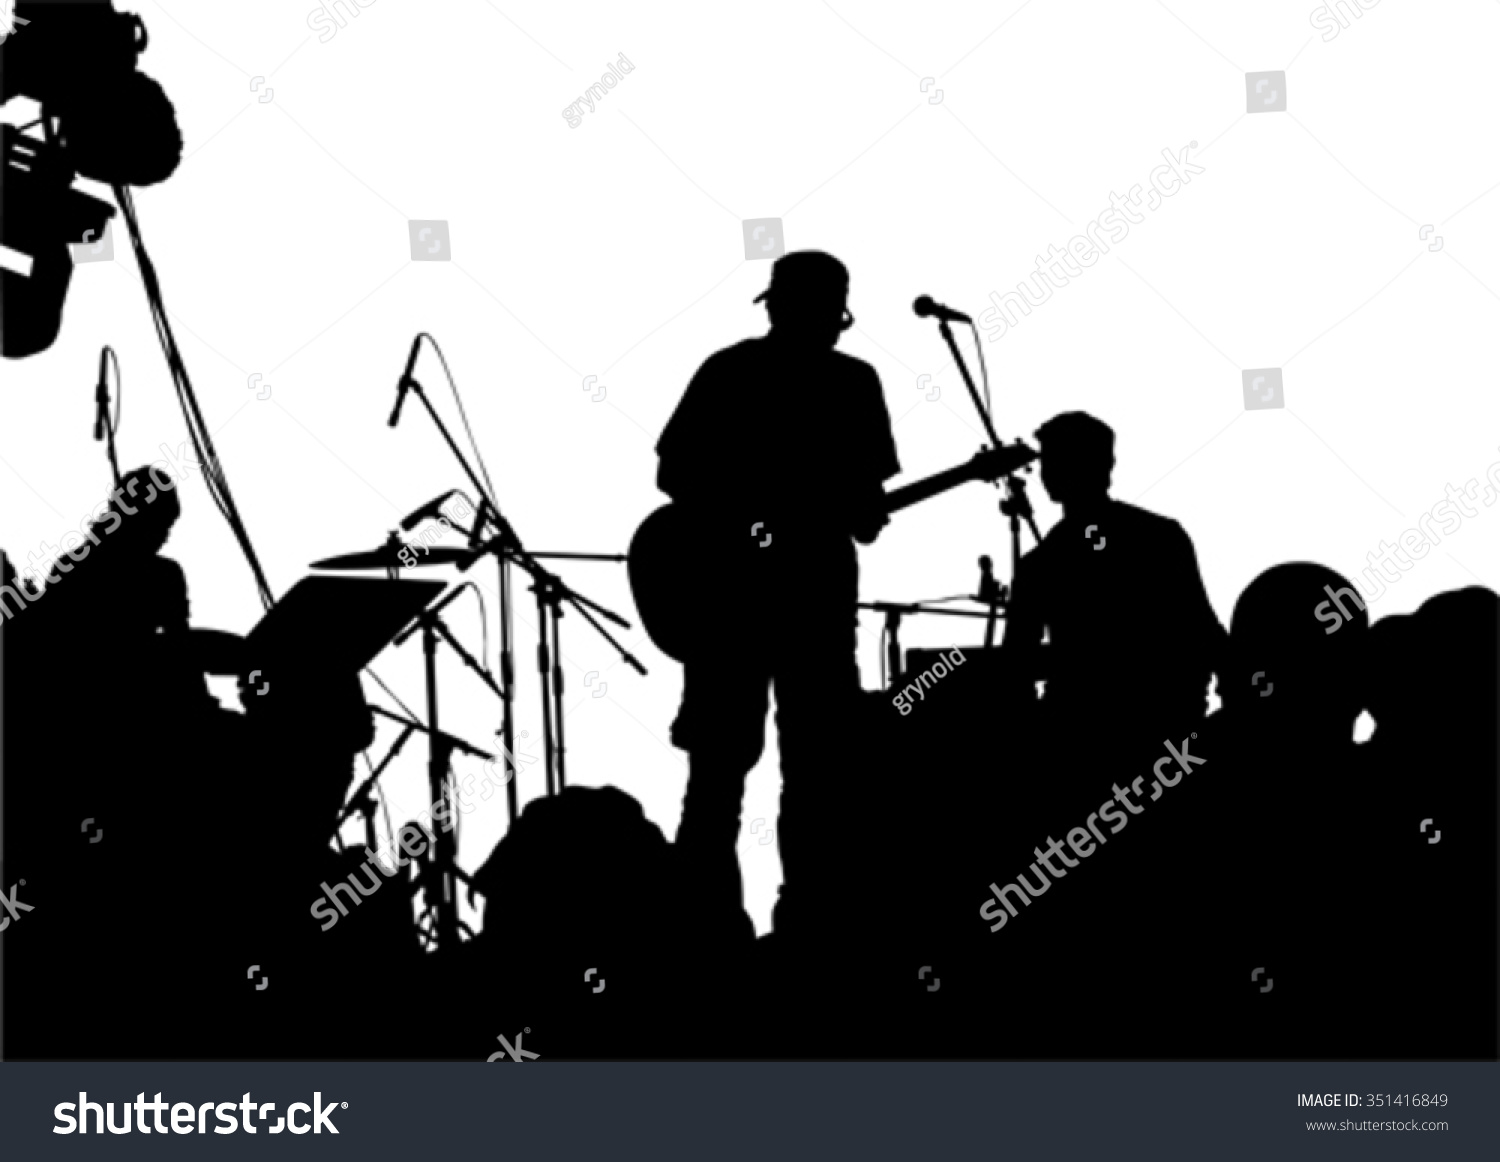 Pics photos rock concert background - Concert Of Rock Band On A White Background